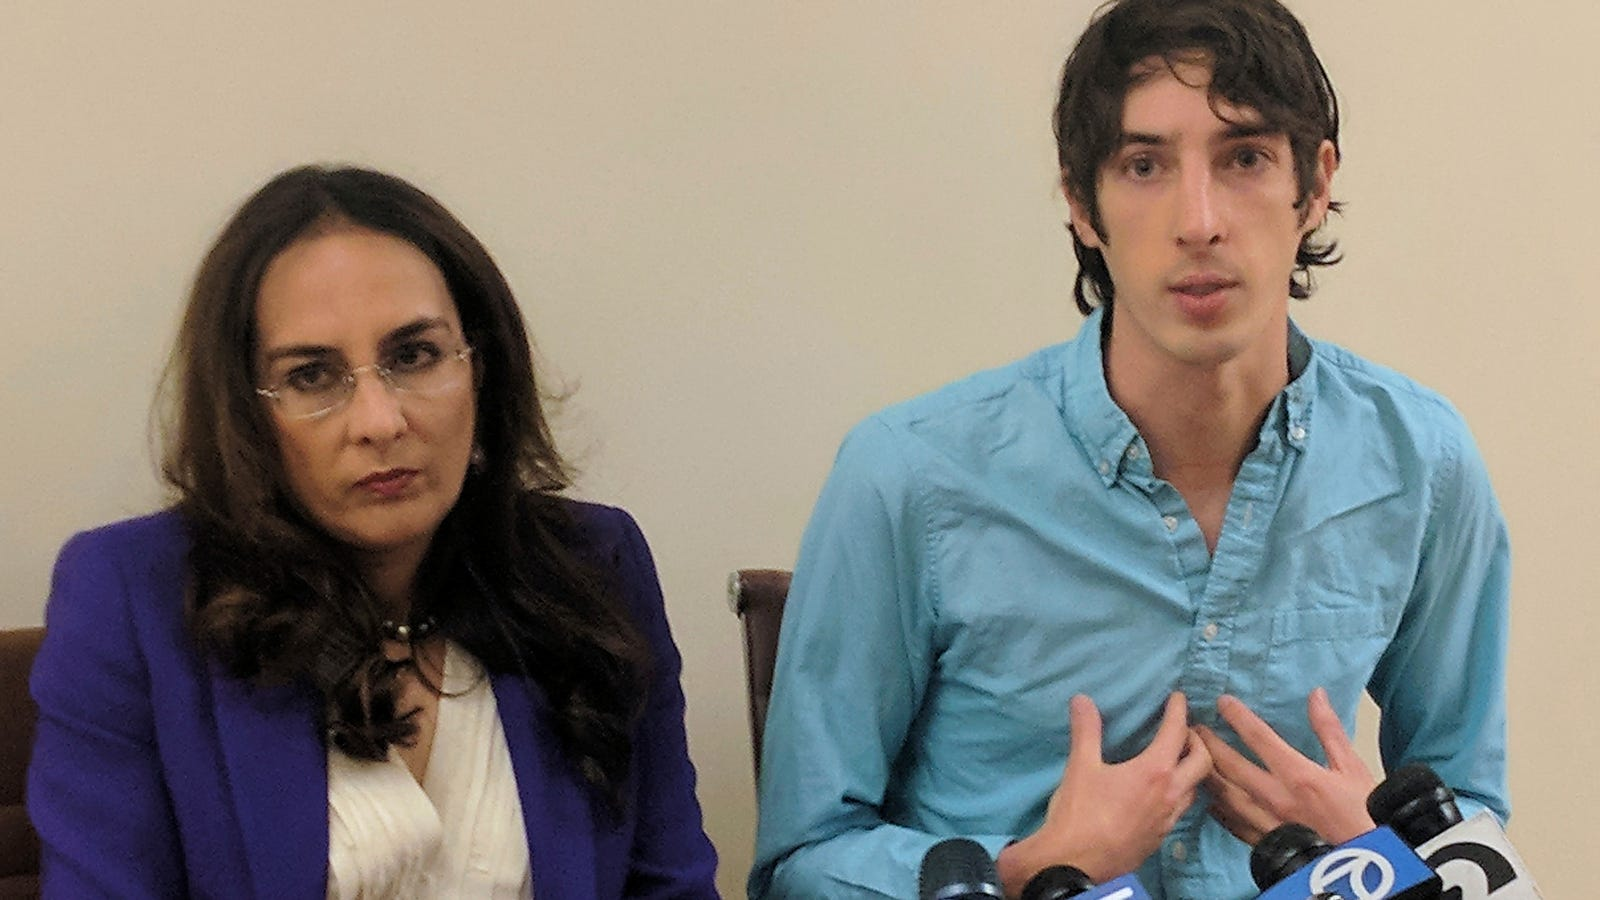 Google Fails to Have Lawsuit Originally Brought by James Damore Thrown Out - Gizmodo